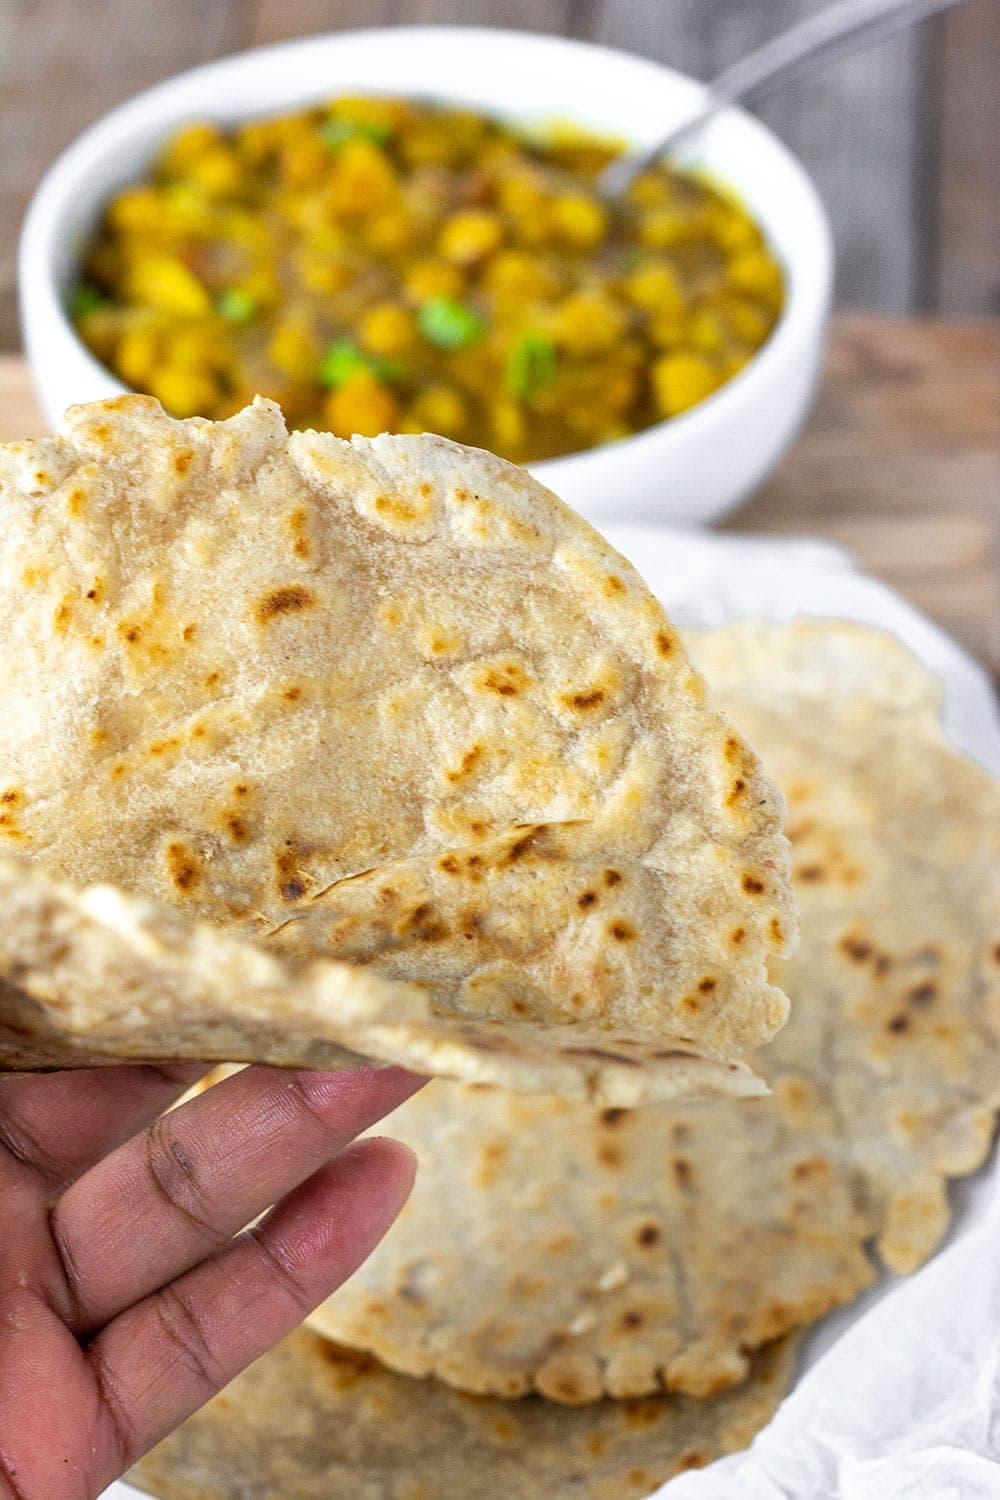 gluten-free flatbread being folded in hand above white plate with more flatbread and chickpea curry in the background